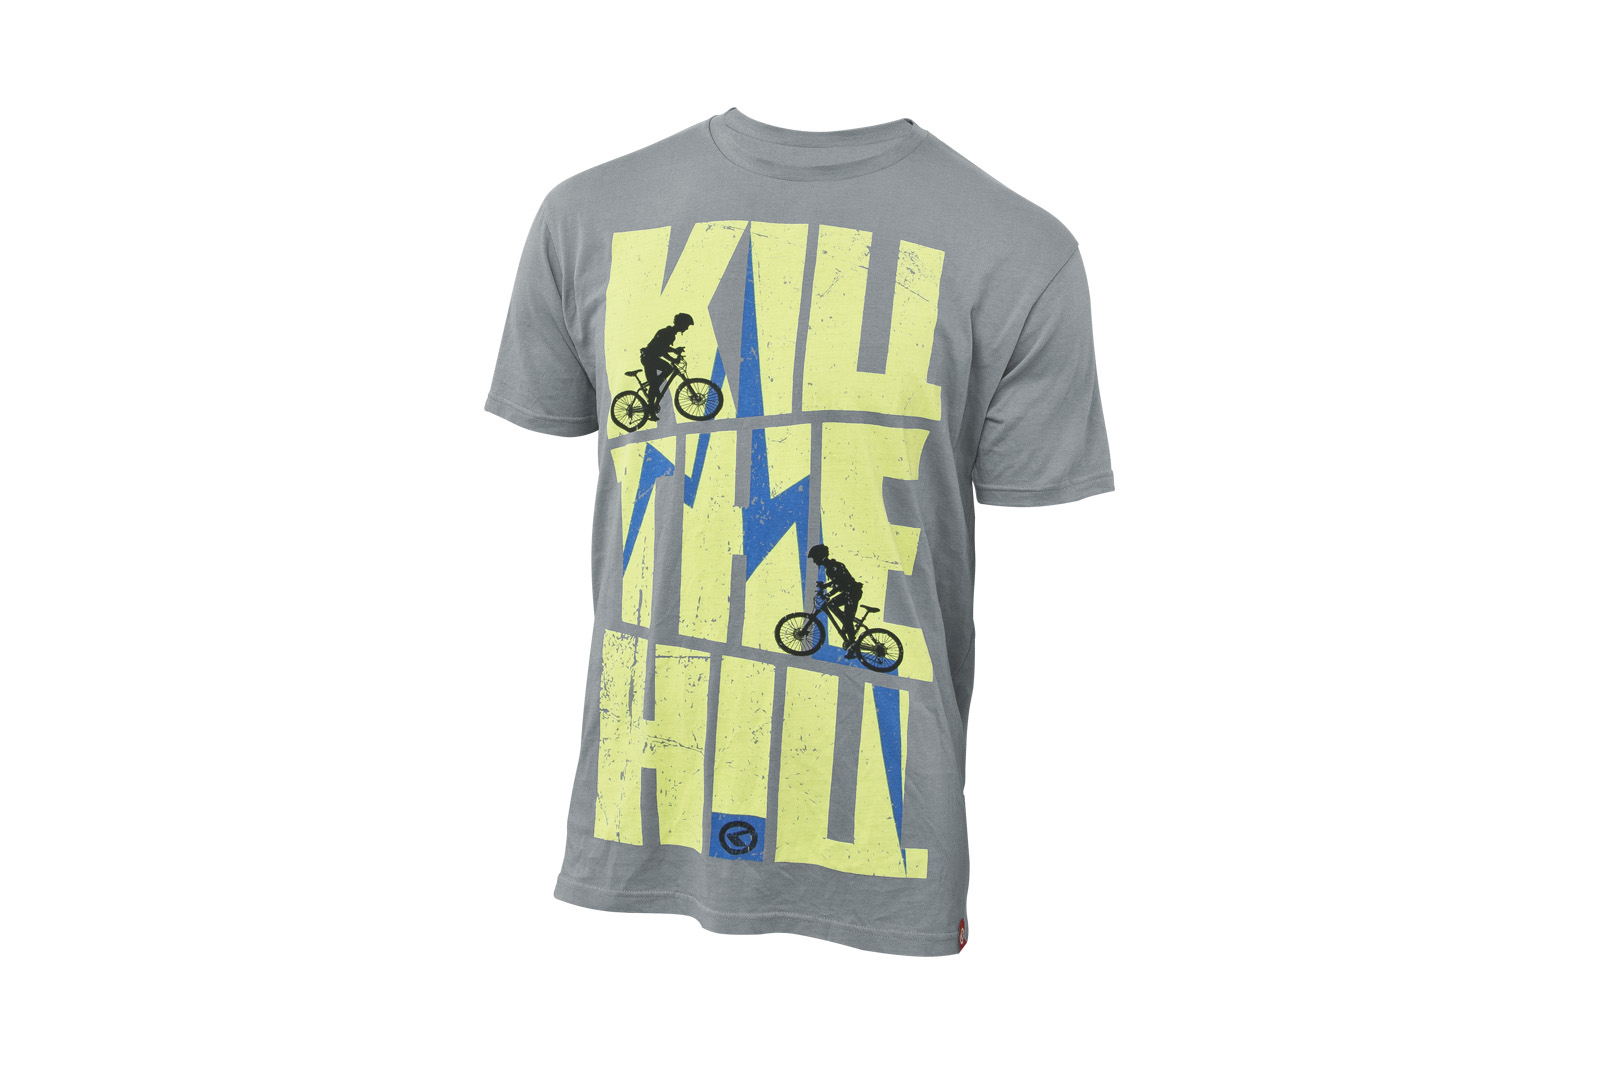 T-Shirt KELLYS KILL THE HILL kurzarm Grey - XL - Mega Handelsgesellschaft